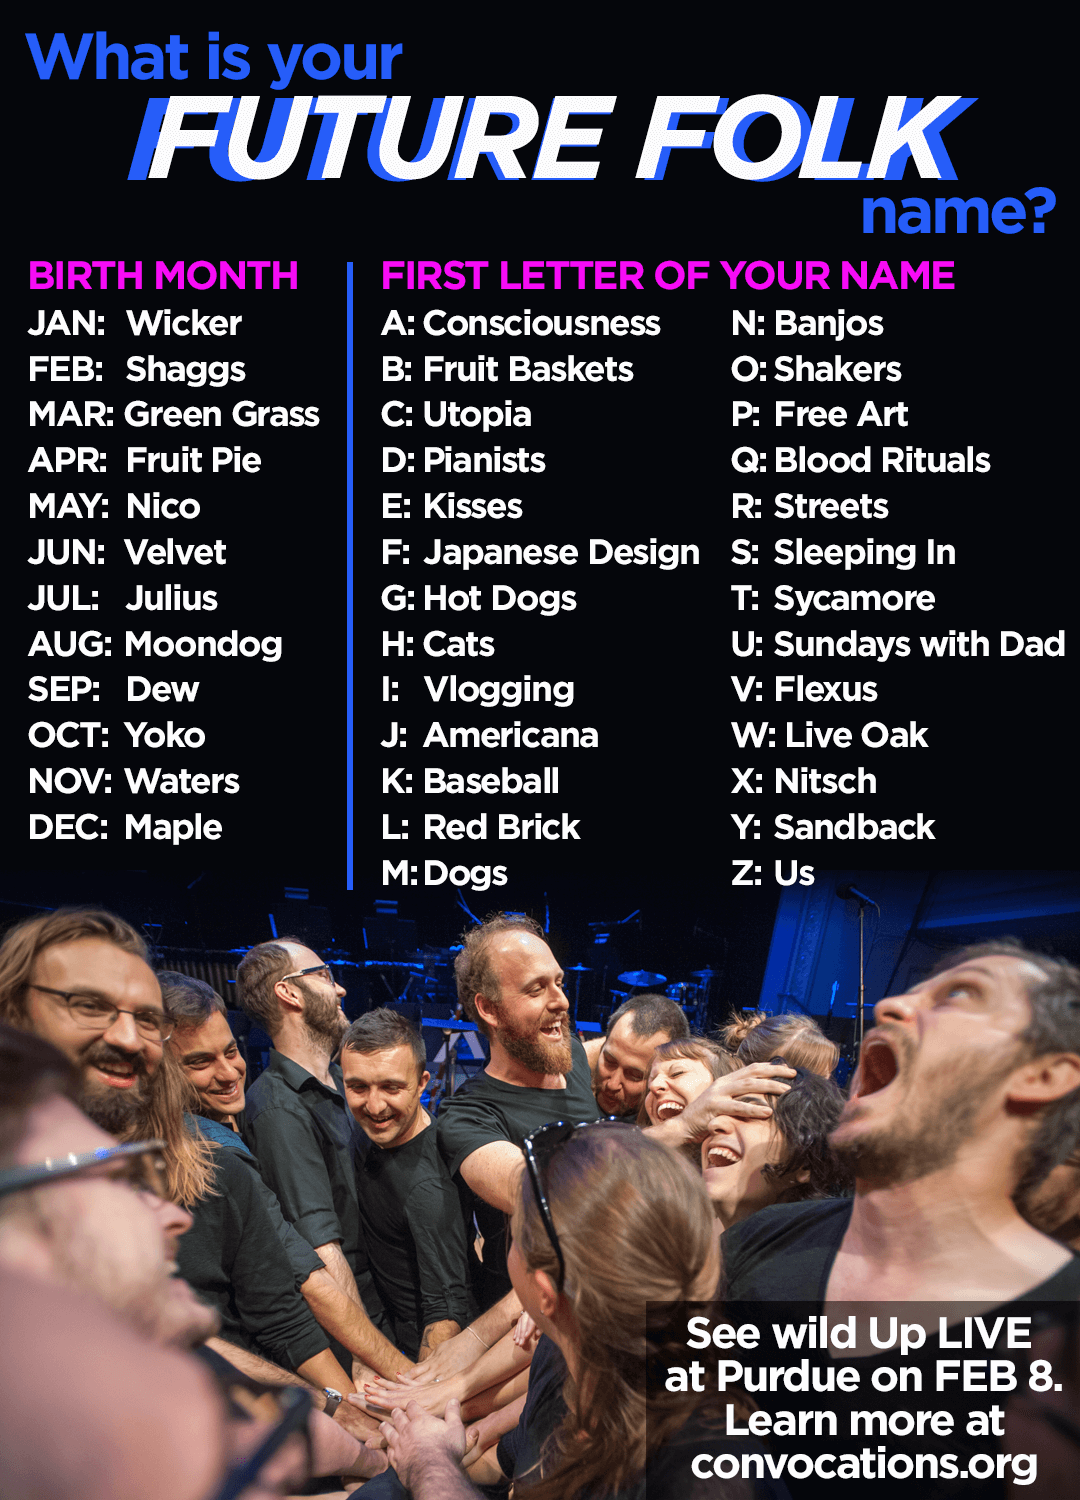 what's your FUTURE FOLK name? YOUR BIRTH MONTH JAN: Wicker FEB: Shaggs MAR: Green Grass APRIL: Fruit Pie MAY: Nico JUNE: Velvet JULY: Julius AUG: Moondog SEP: Dew OCT: Yoko NOV: Waters DEC: Maple FIRST LETTER OF YOUR NAME A: Consciousness B: Fruit Baskets C: Utopia D: Pianists E: Kisses F: Japanese Design G: Hot Dogs H: Cats I: Vlogging J: Americana K: Baseball L: Red Brick Street M: Dogs N: Banjos O: Shakers P: Free Art Q: Blood Rituals R: Red Brick Streets S: Sleeping In T: Sycamore U: Sundays with Dad V: Flexus W: Live Oak X: Nitsch Y: Sandback Z: Us